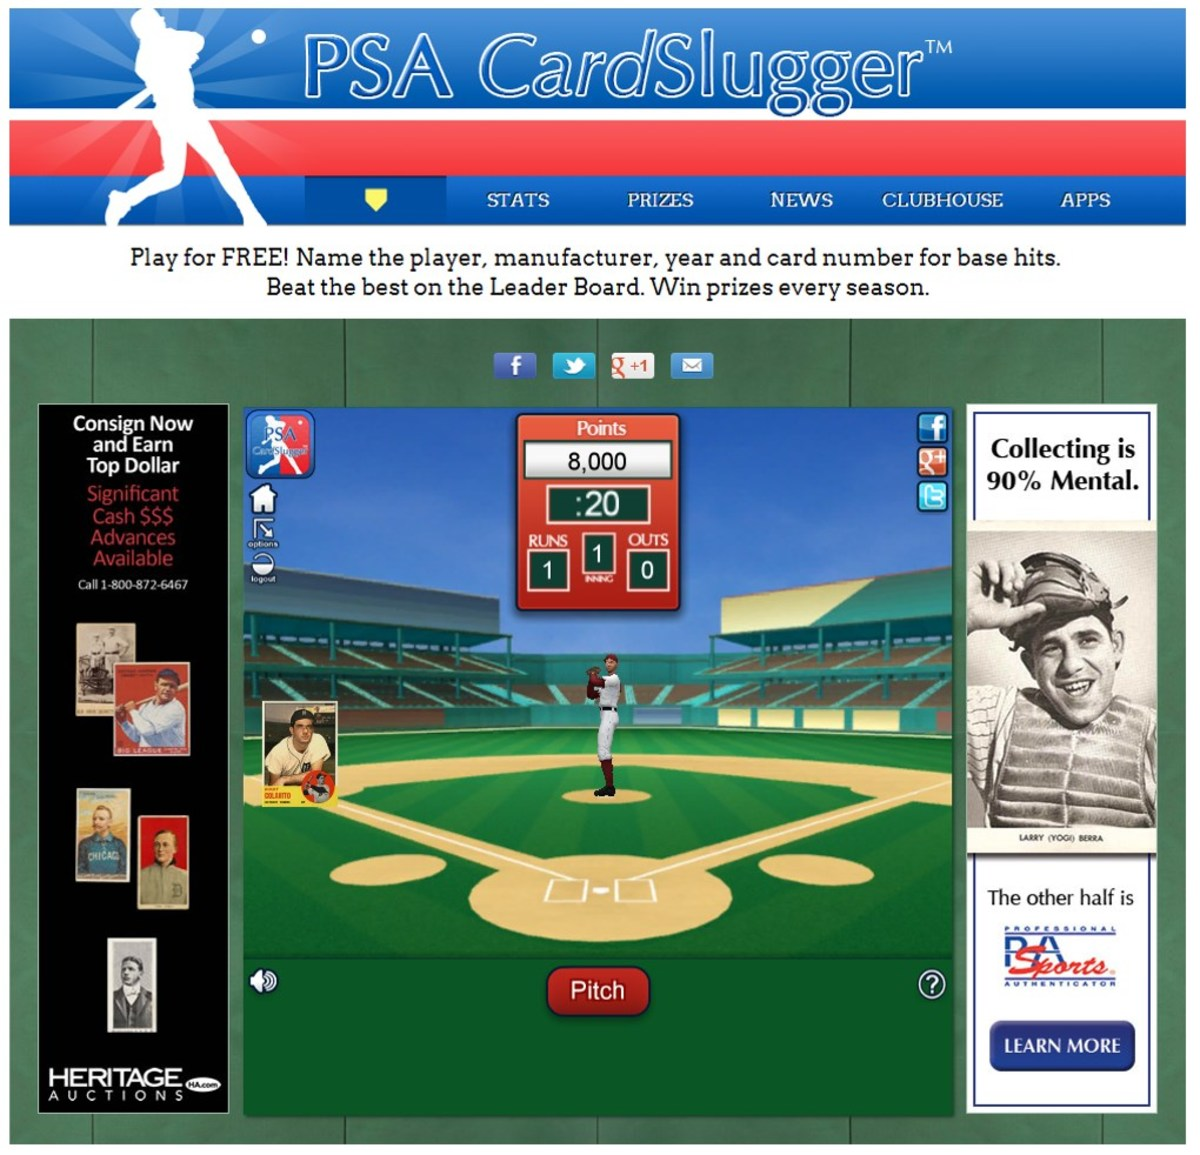 PSA Cardslugger home page